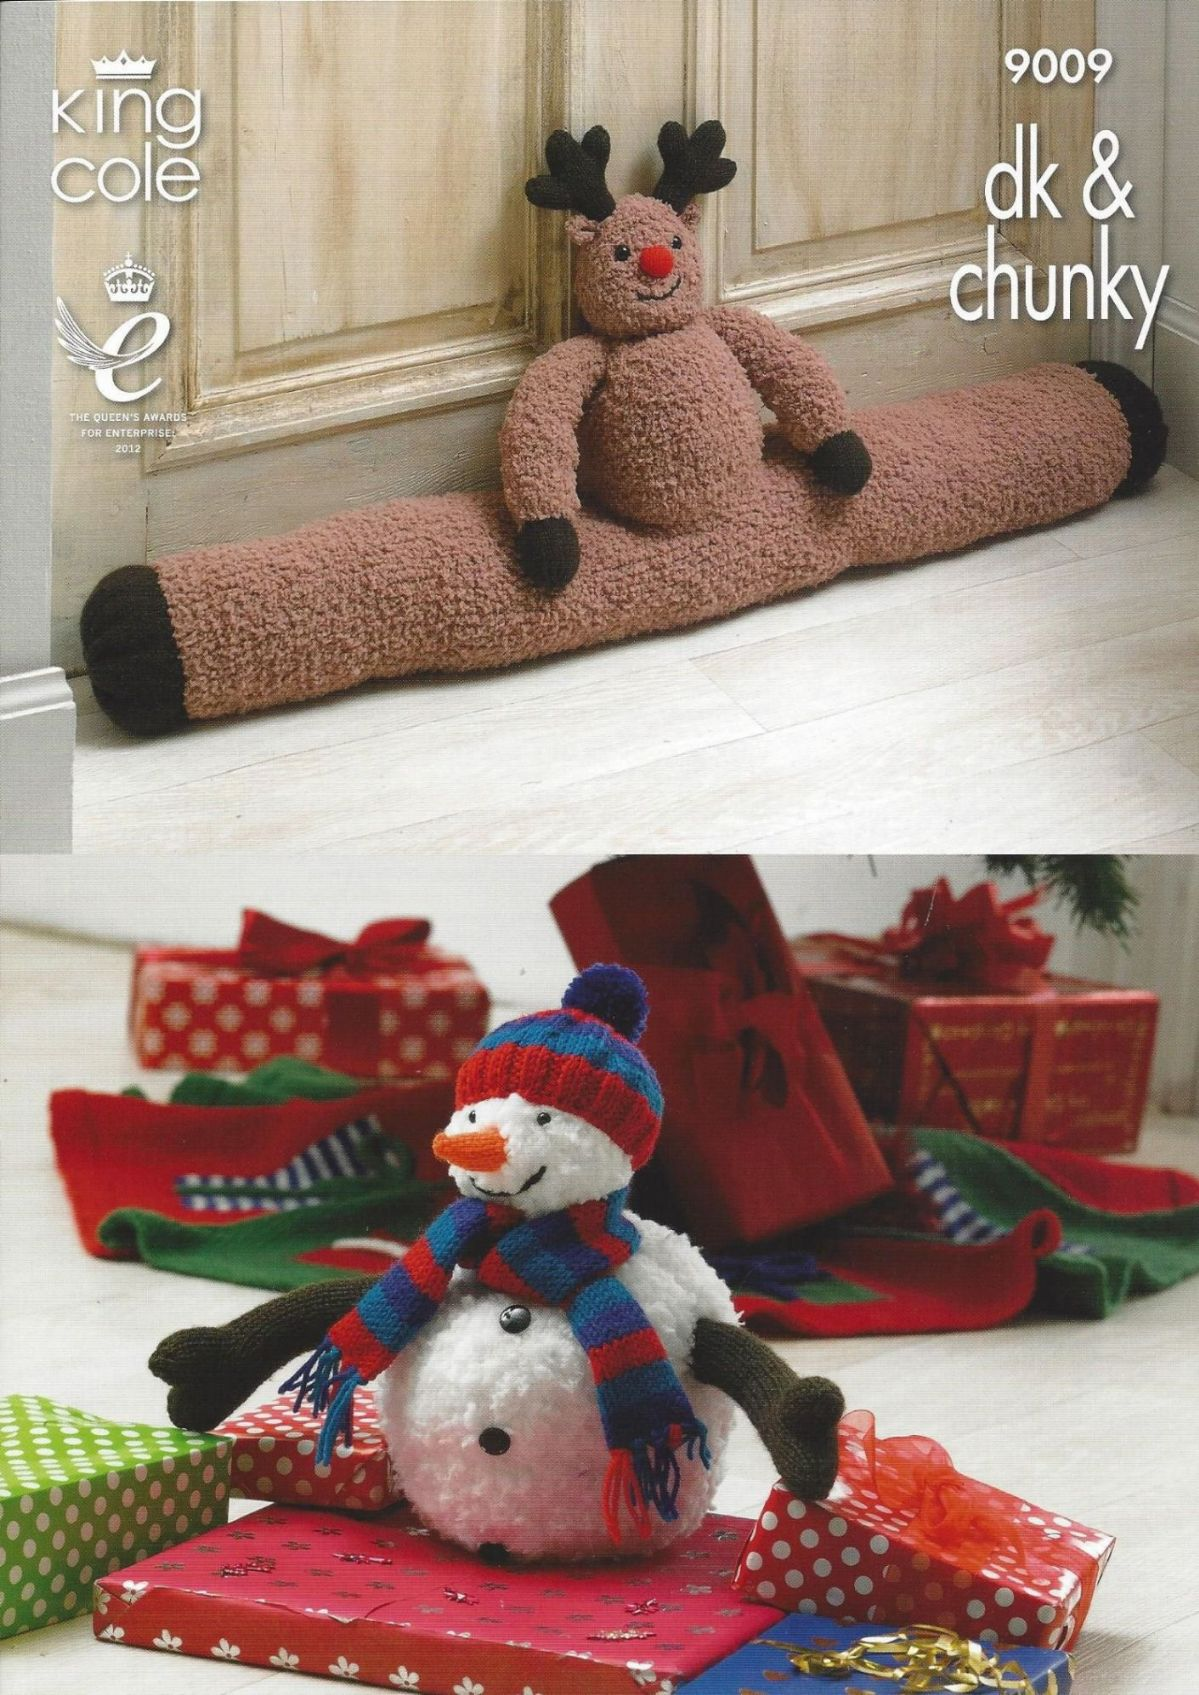 King Cole Snowman Knitting Pattern : King Cole - 9009 Rudolph Draught Excluder Christmas Tree Skirt and Snowman To...